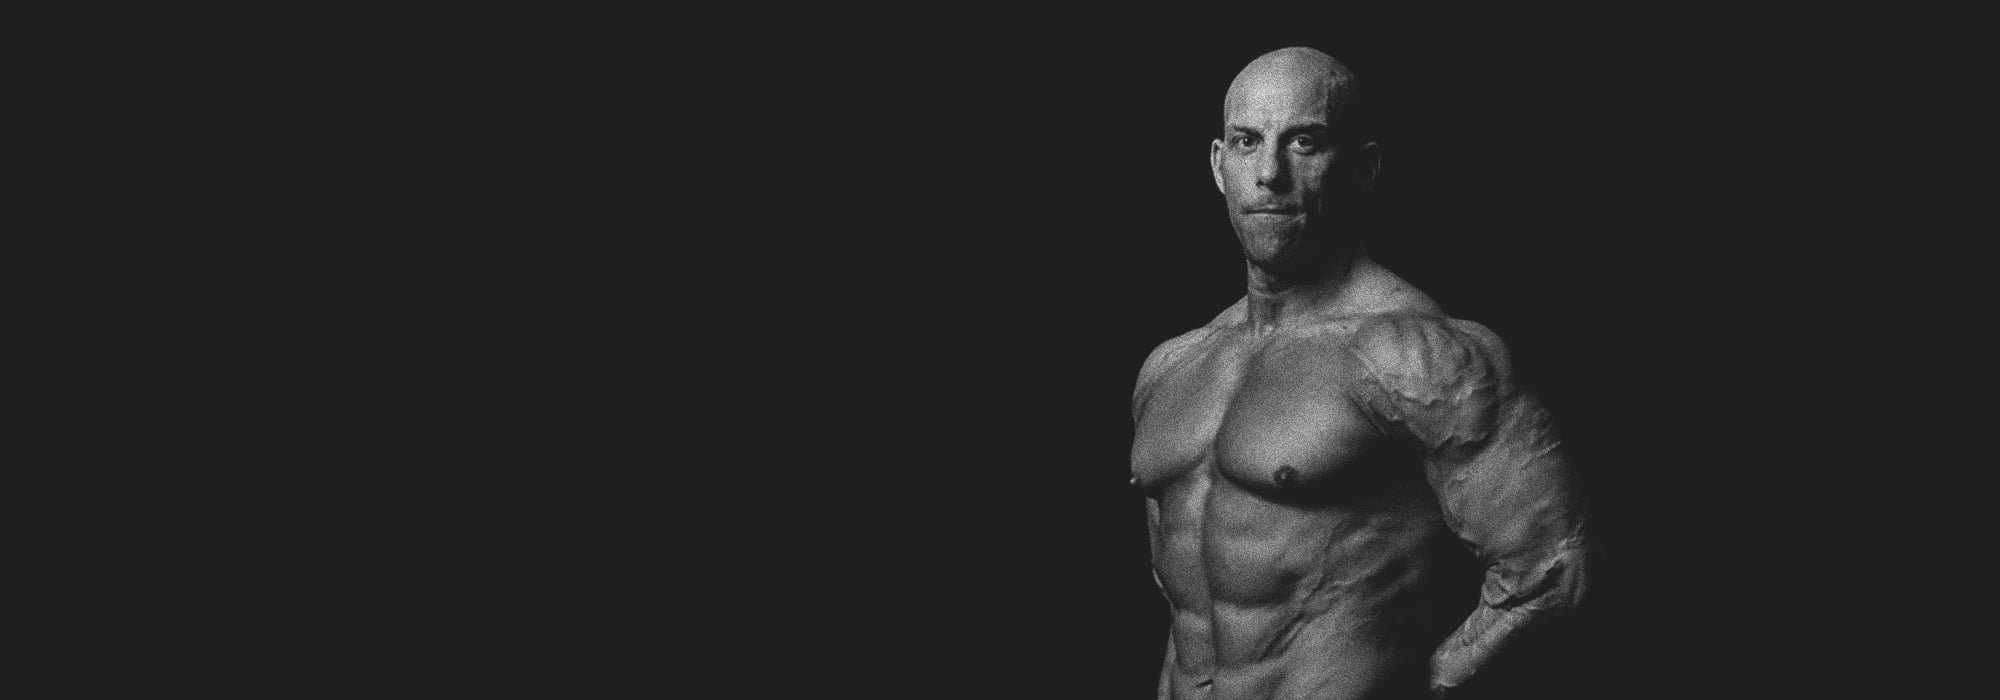 Online Coaching With Nutrition